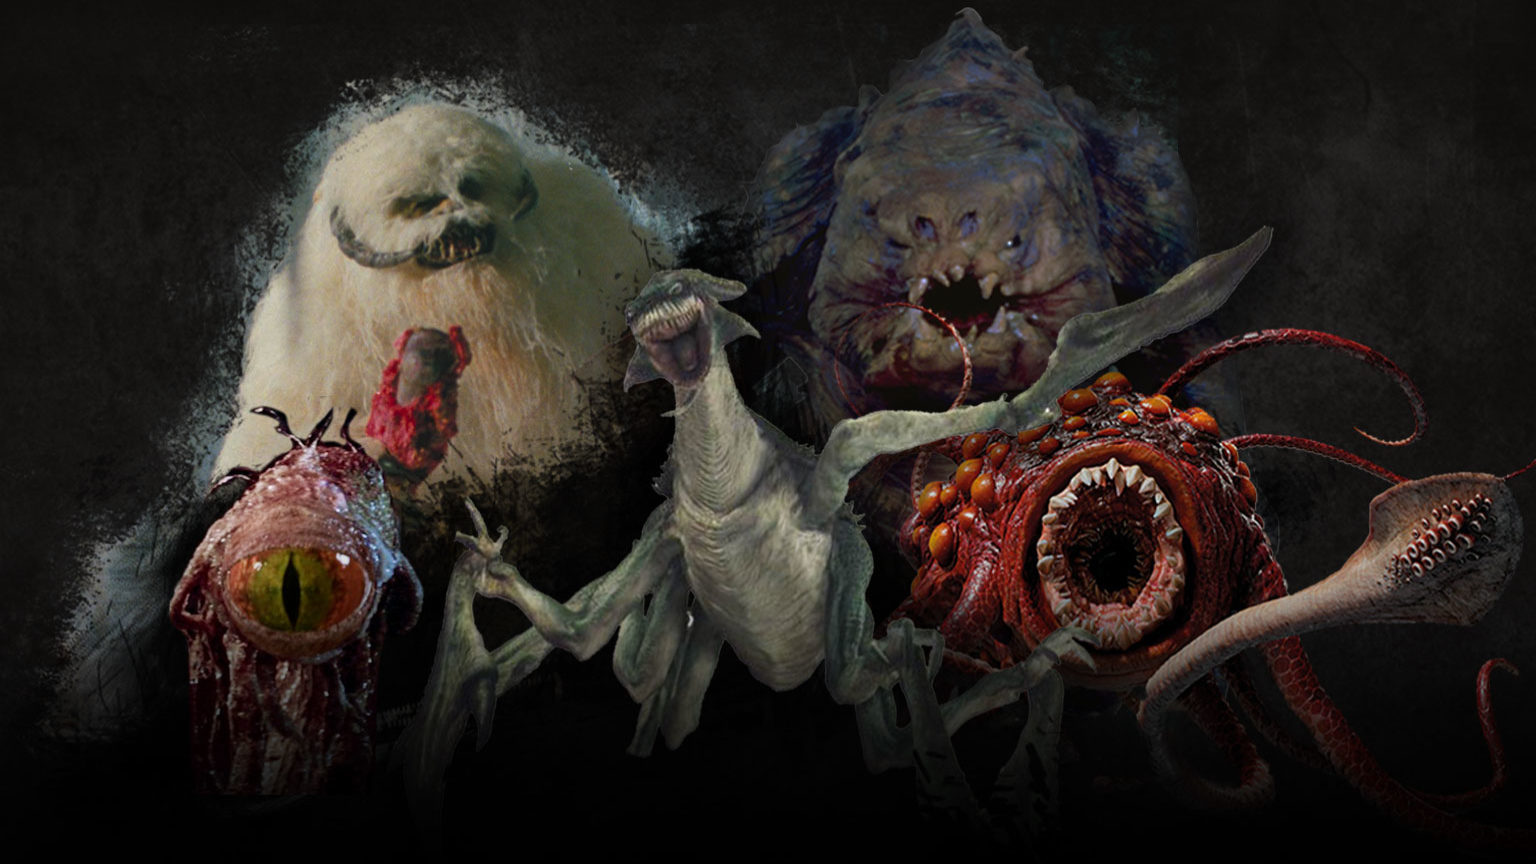 Star Wars monsters